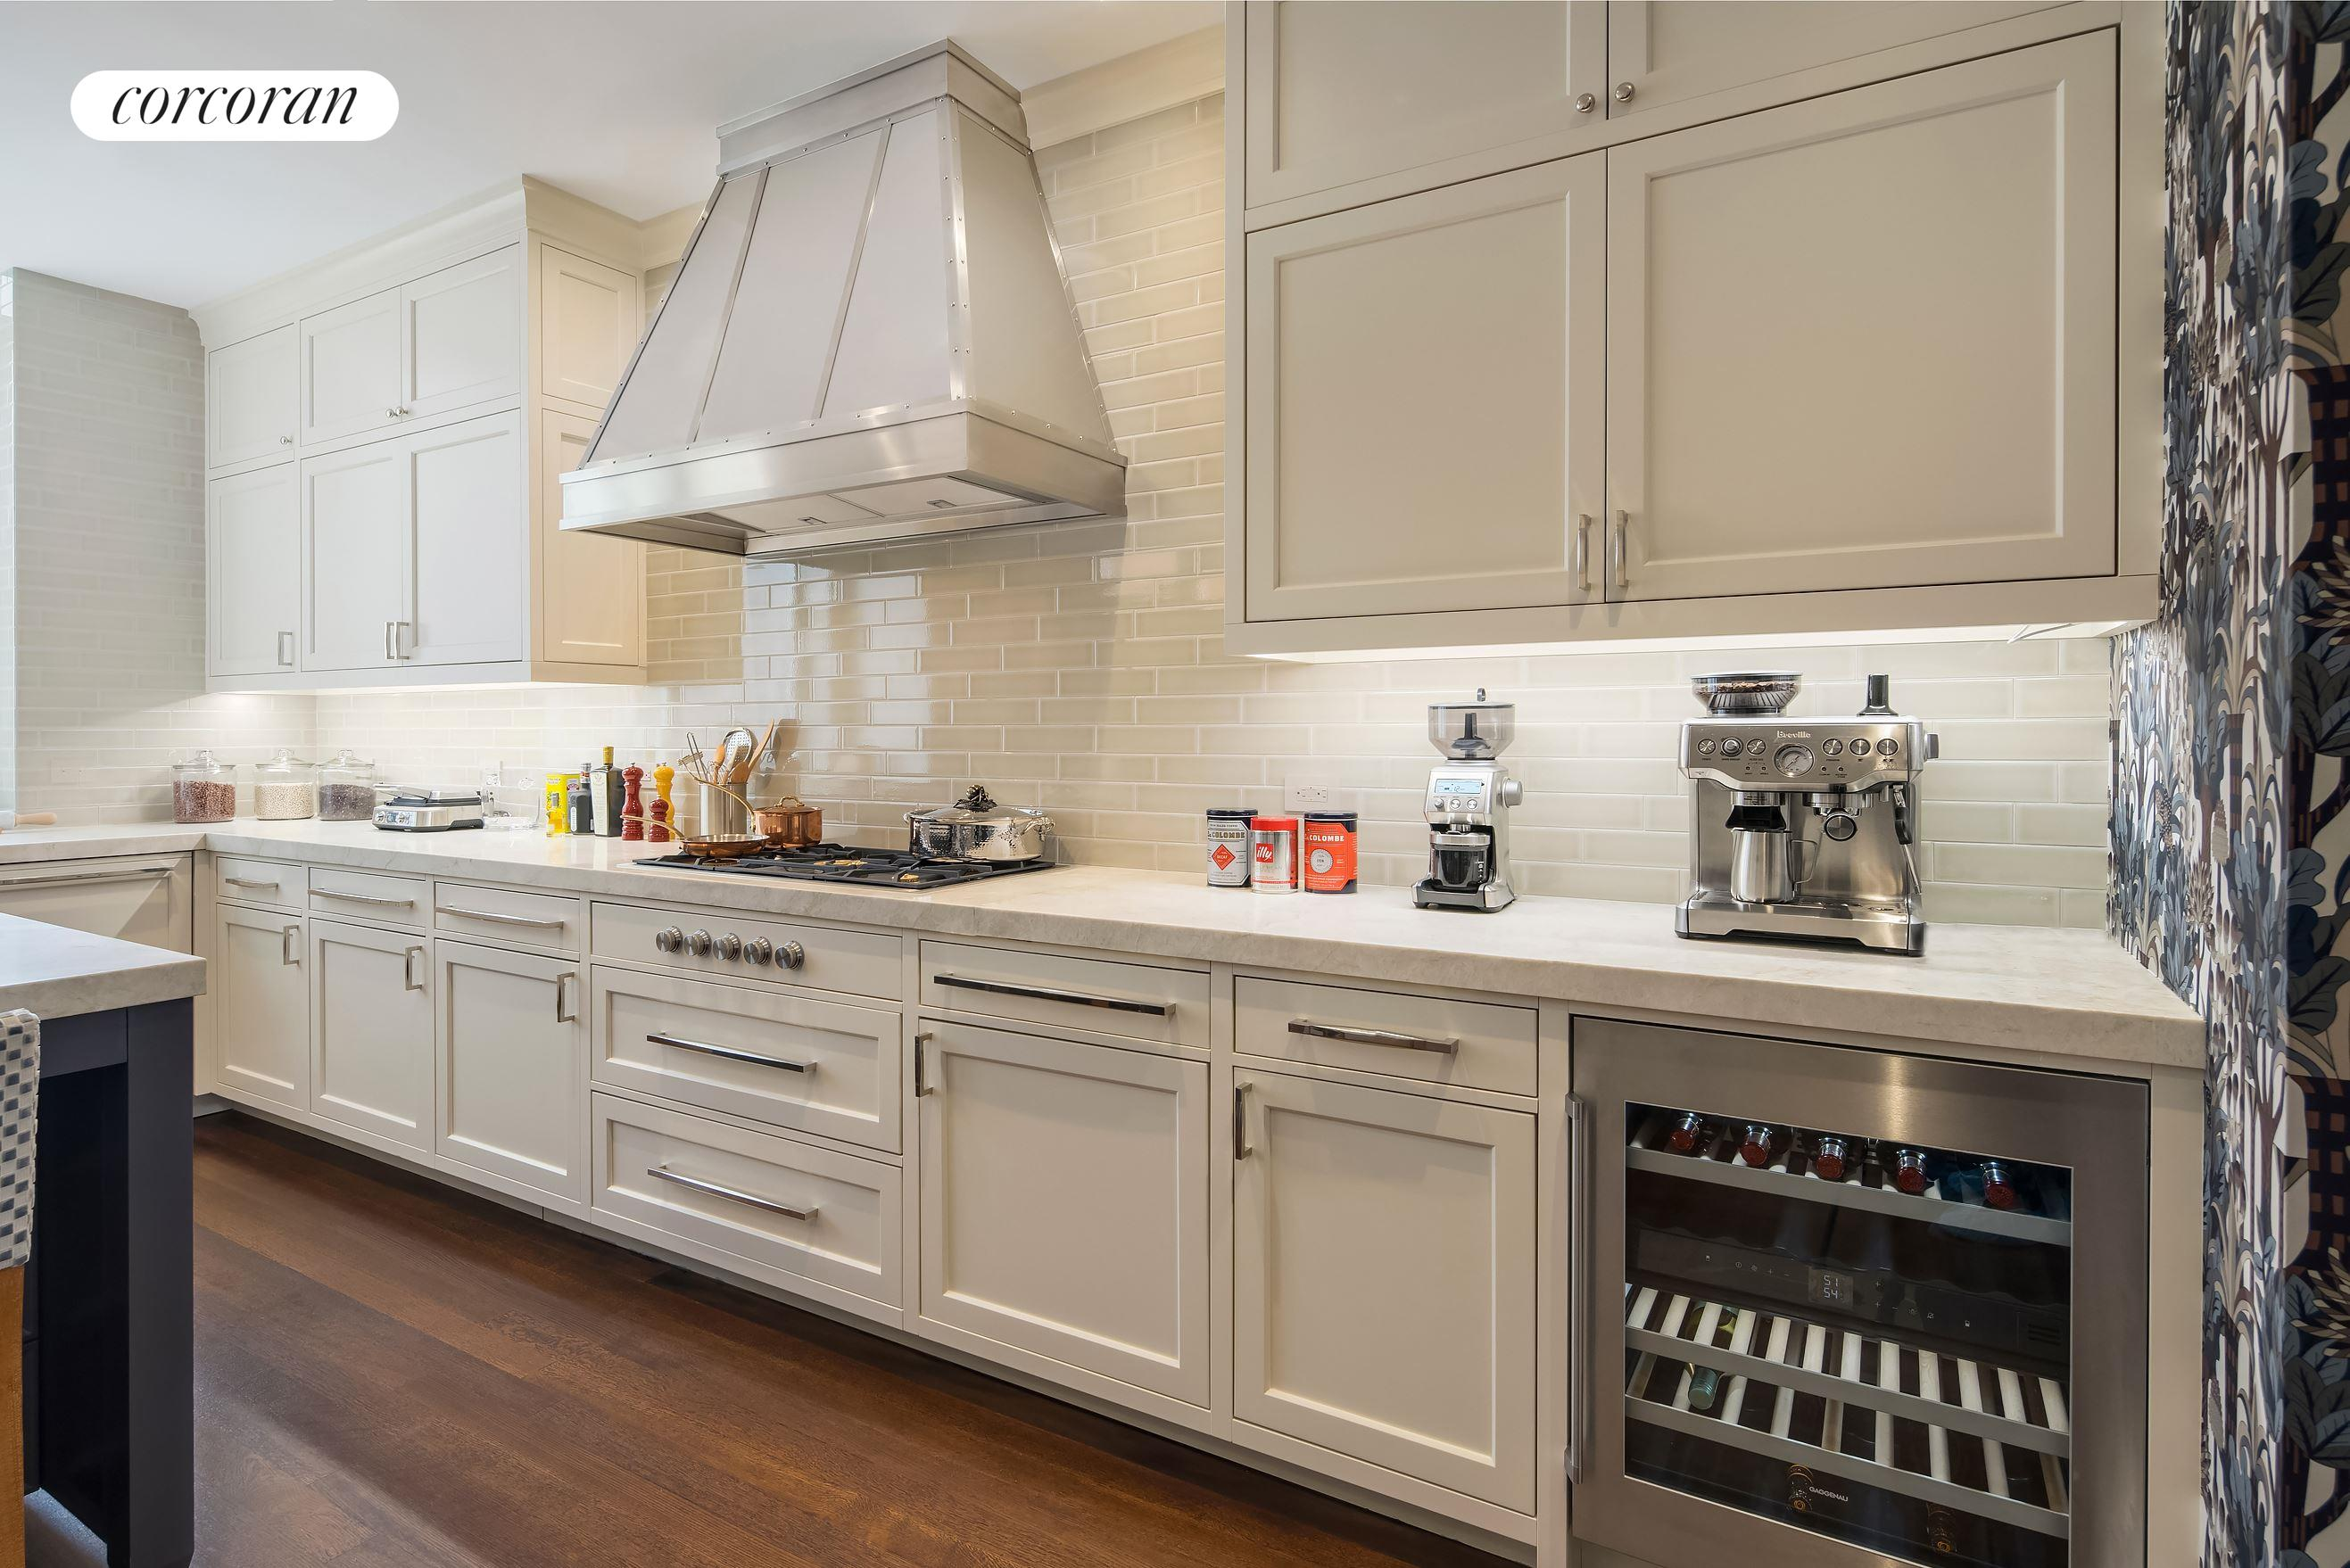 Corcoran, 20 East End Avenue, Apt. 3D, Upper East Side Real ...